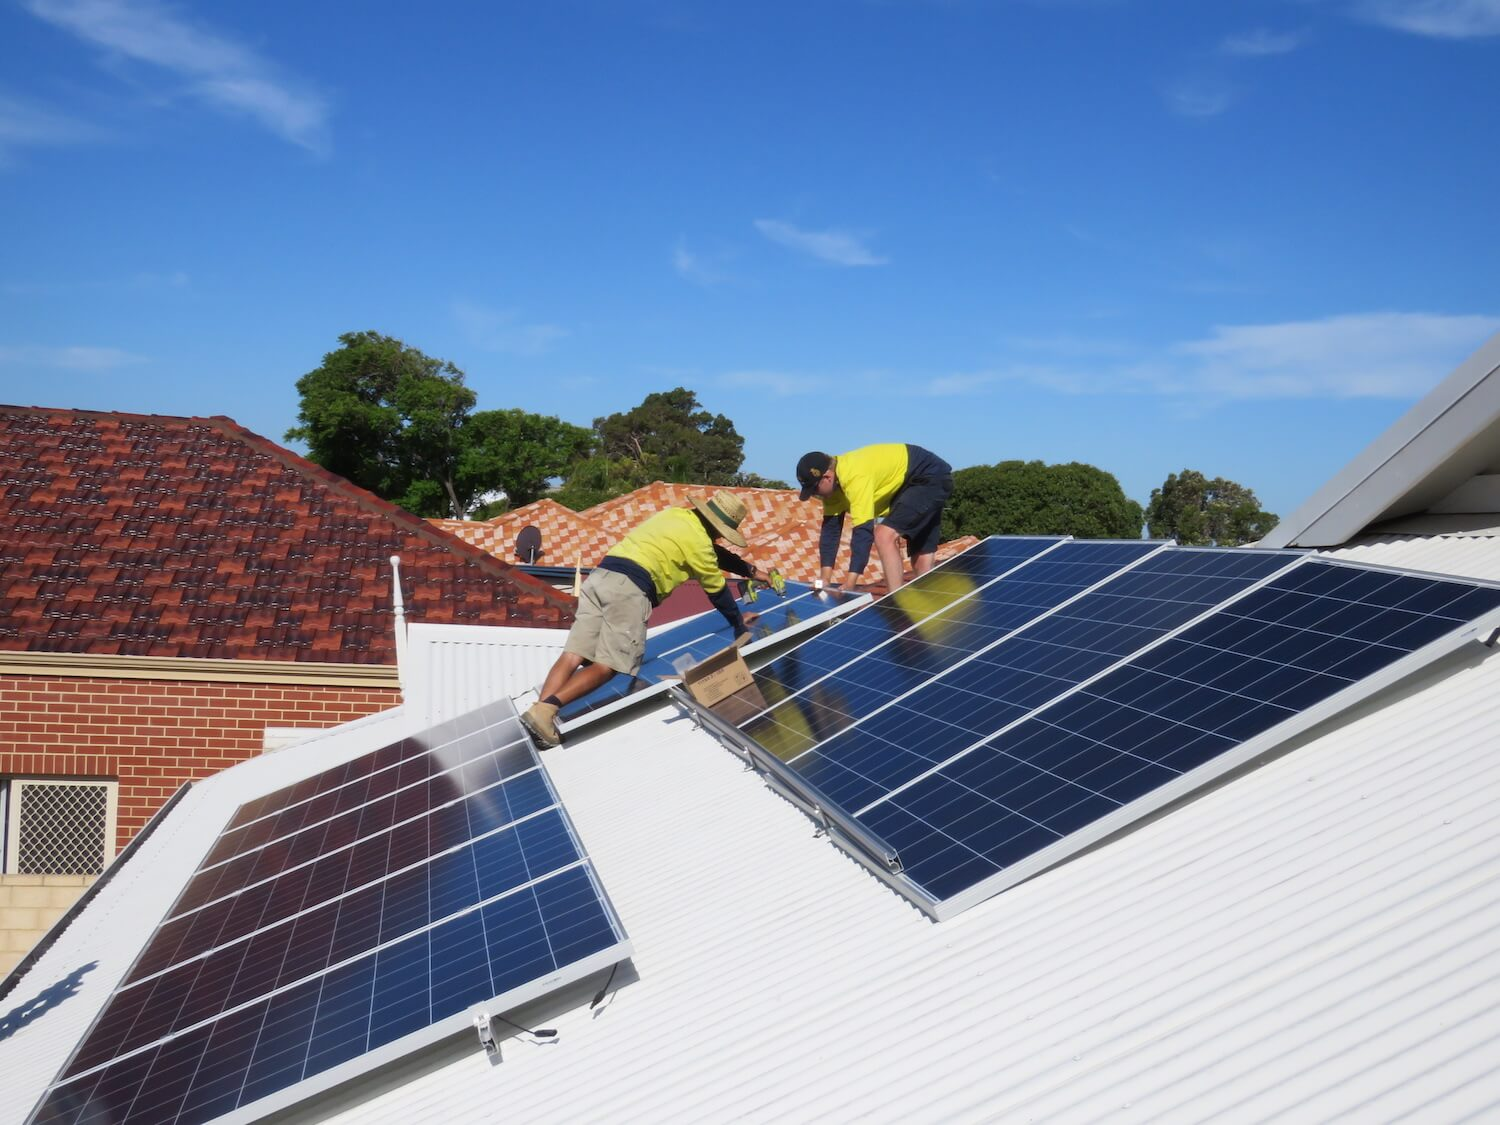 Solar power installers Enerklean